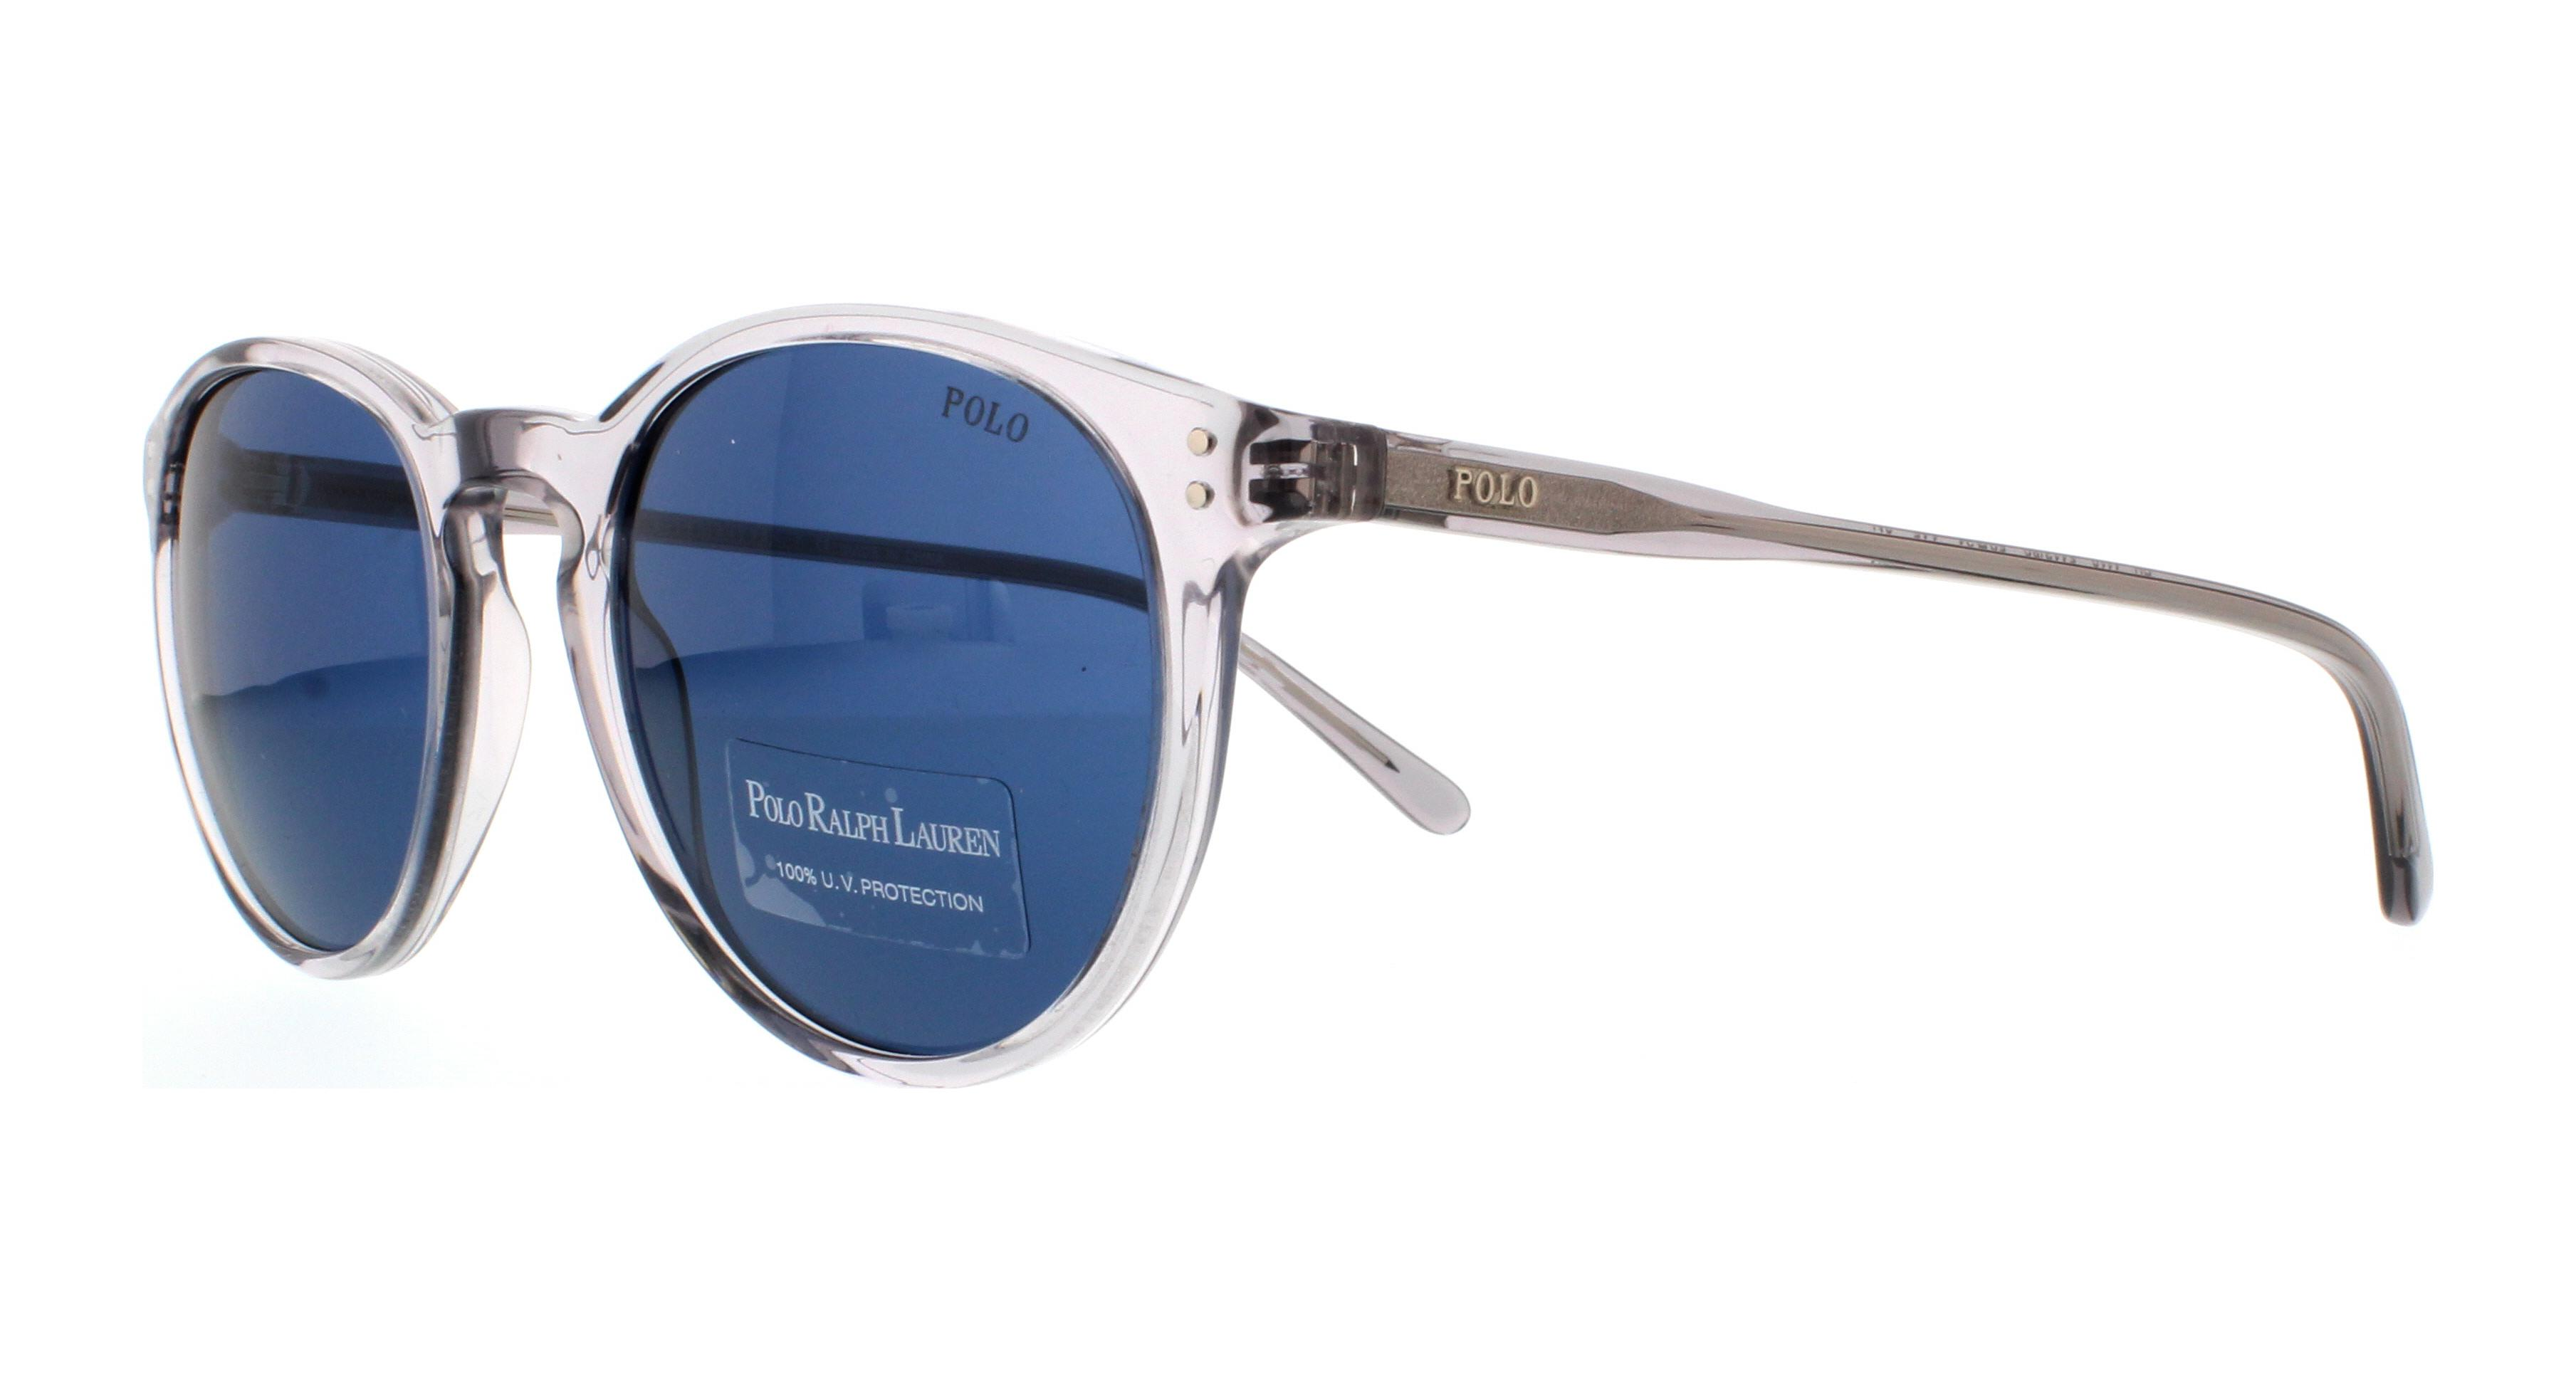 b39c8575214 Polo Sunglasses Ph 4110 - Bitterroot Public Library